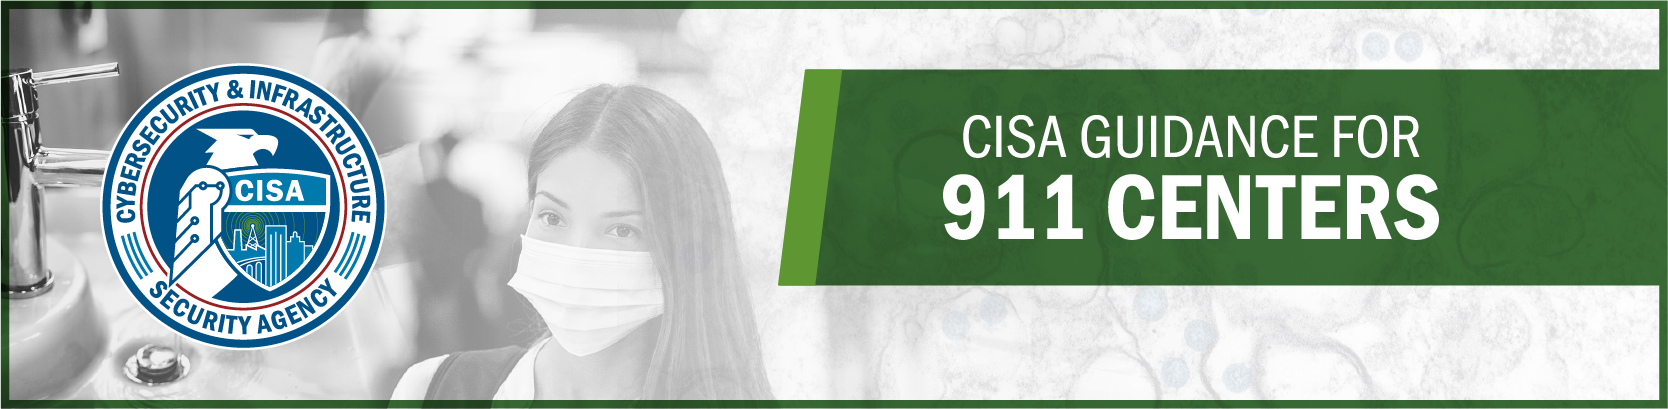 CISA Guidance for 911 Centers